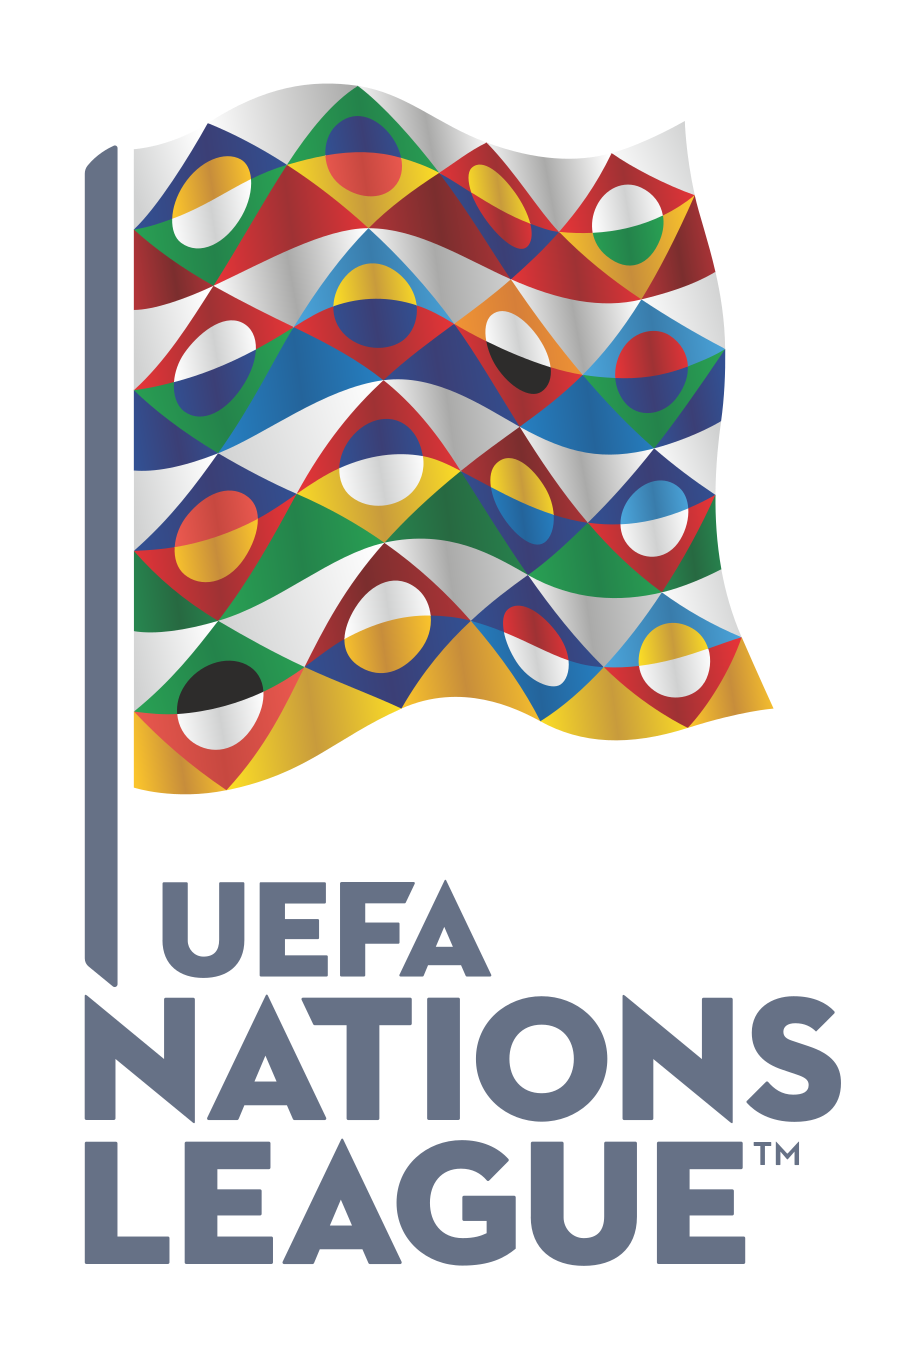 [PRONOSTICI] 5ª e 6ª Giornata | UEFA Nations League - Pagina 2 Logo211